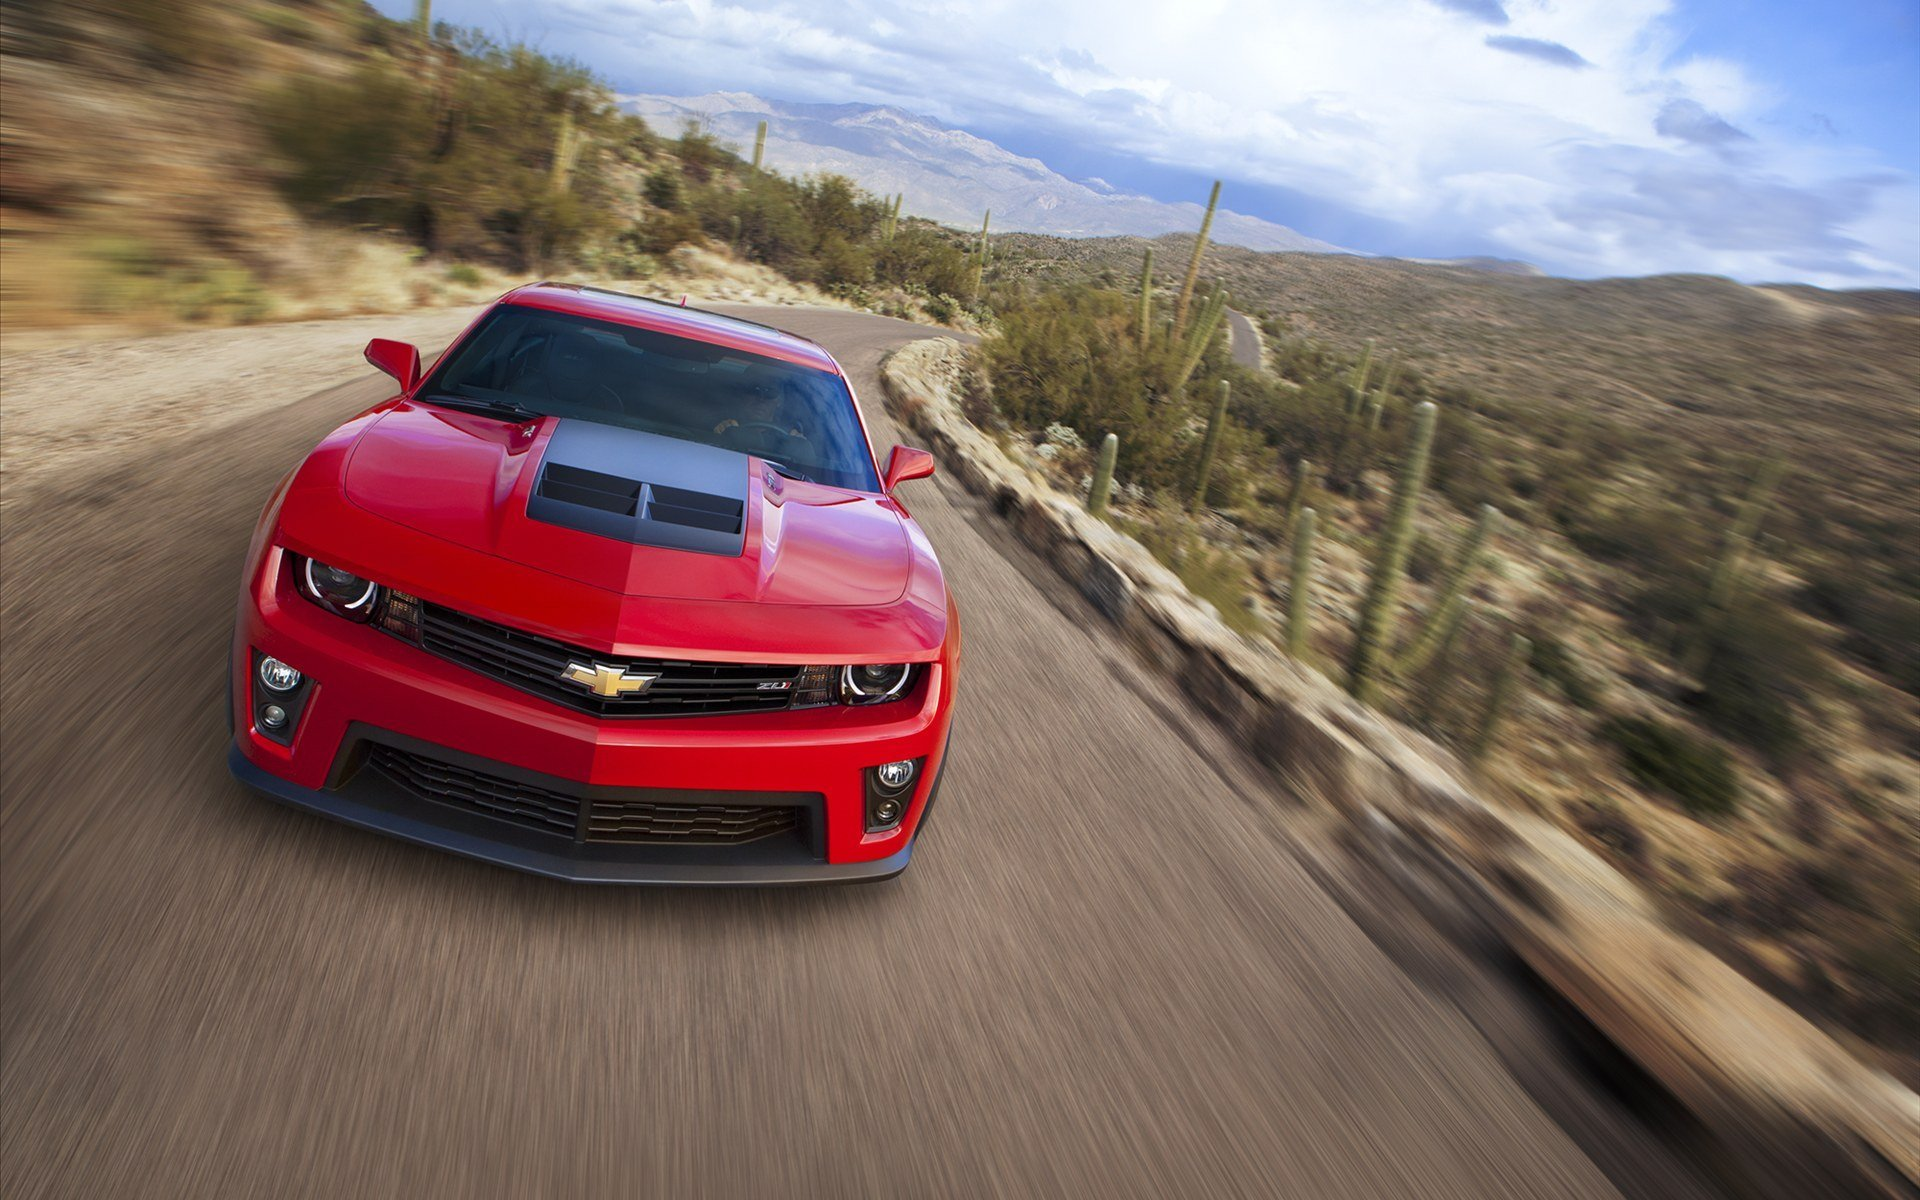 Chevrolet Camaro ZL1 wallpaper 13084 1920x1200